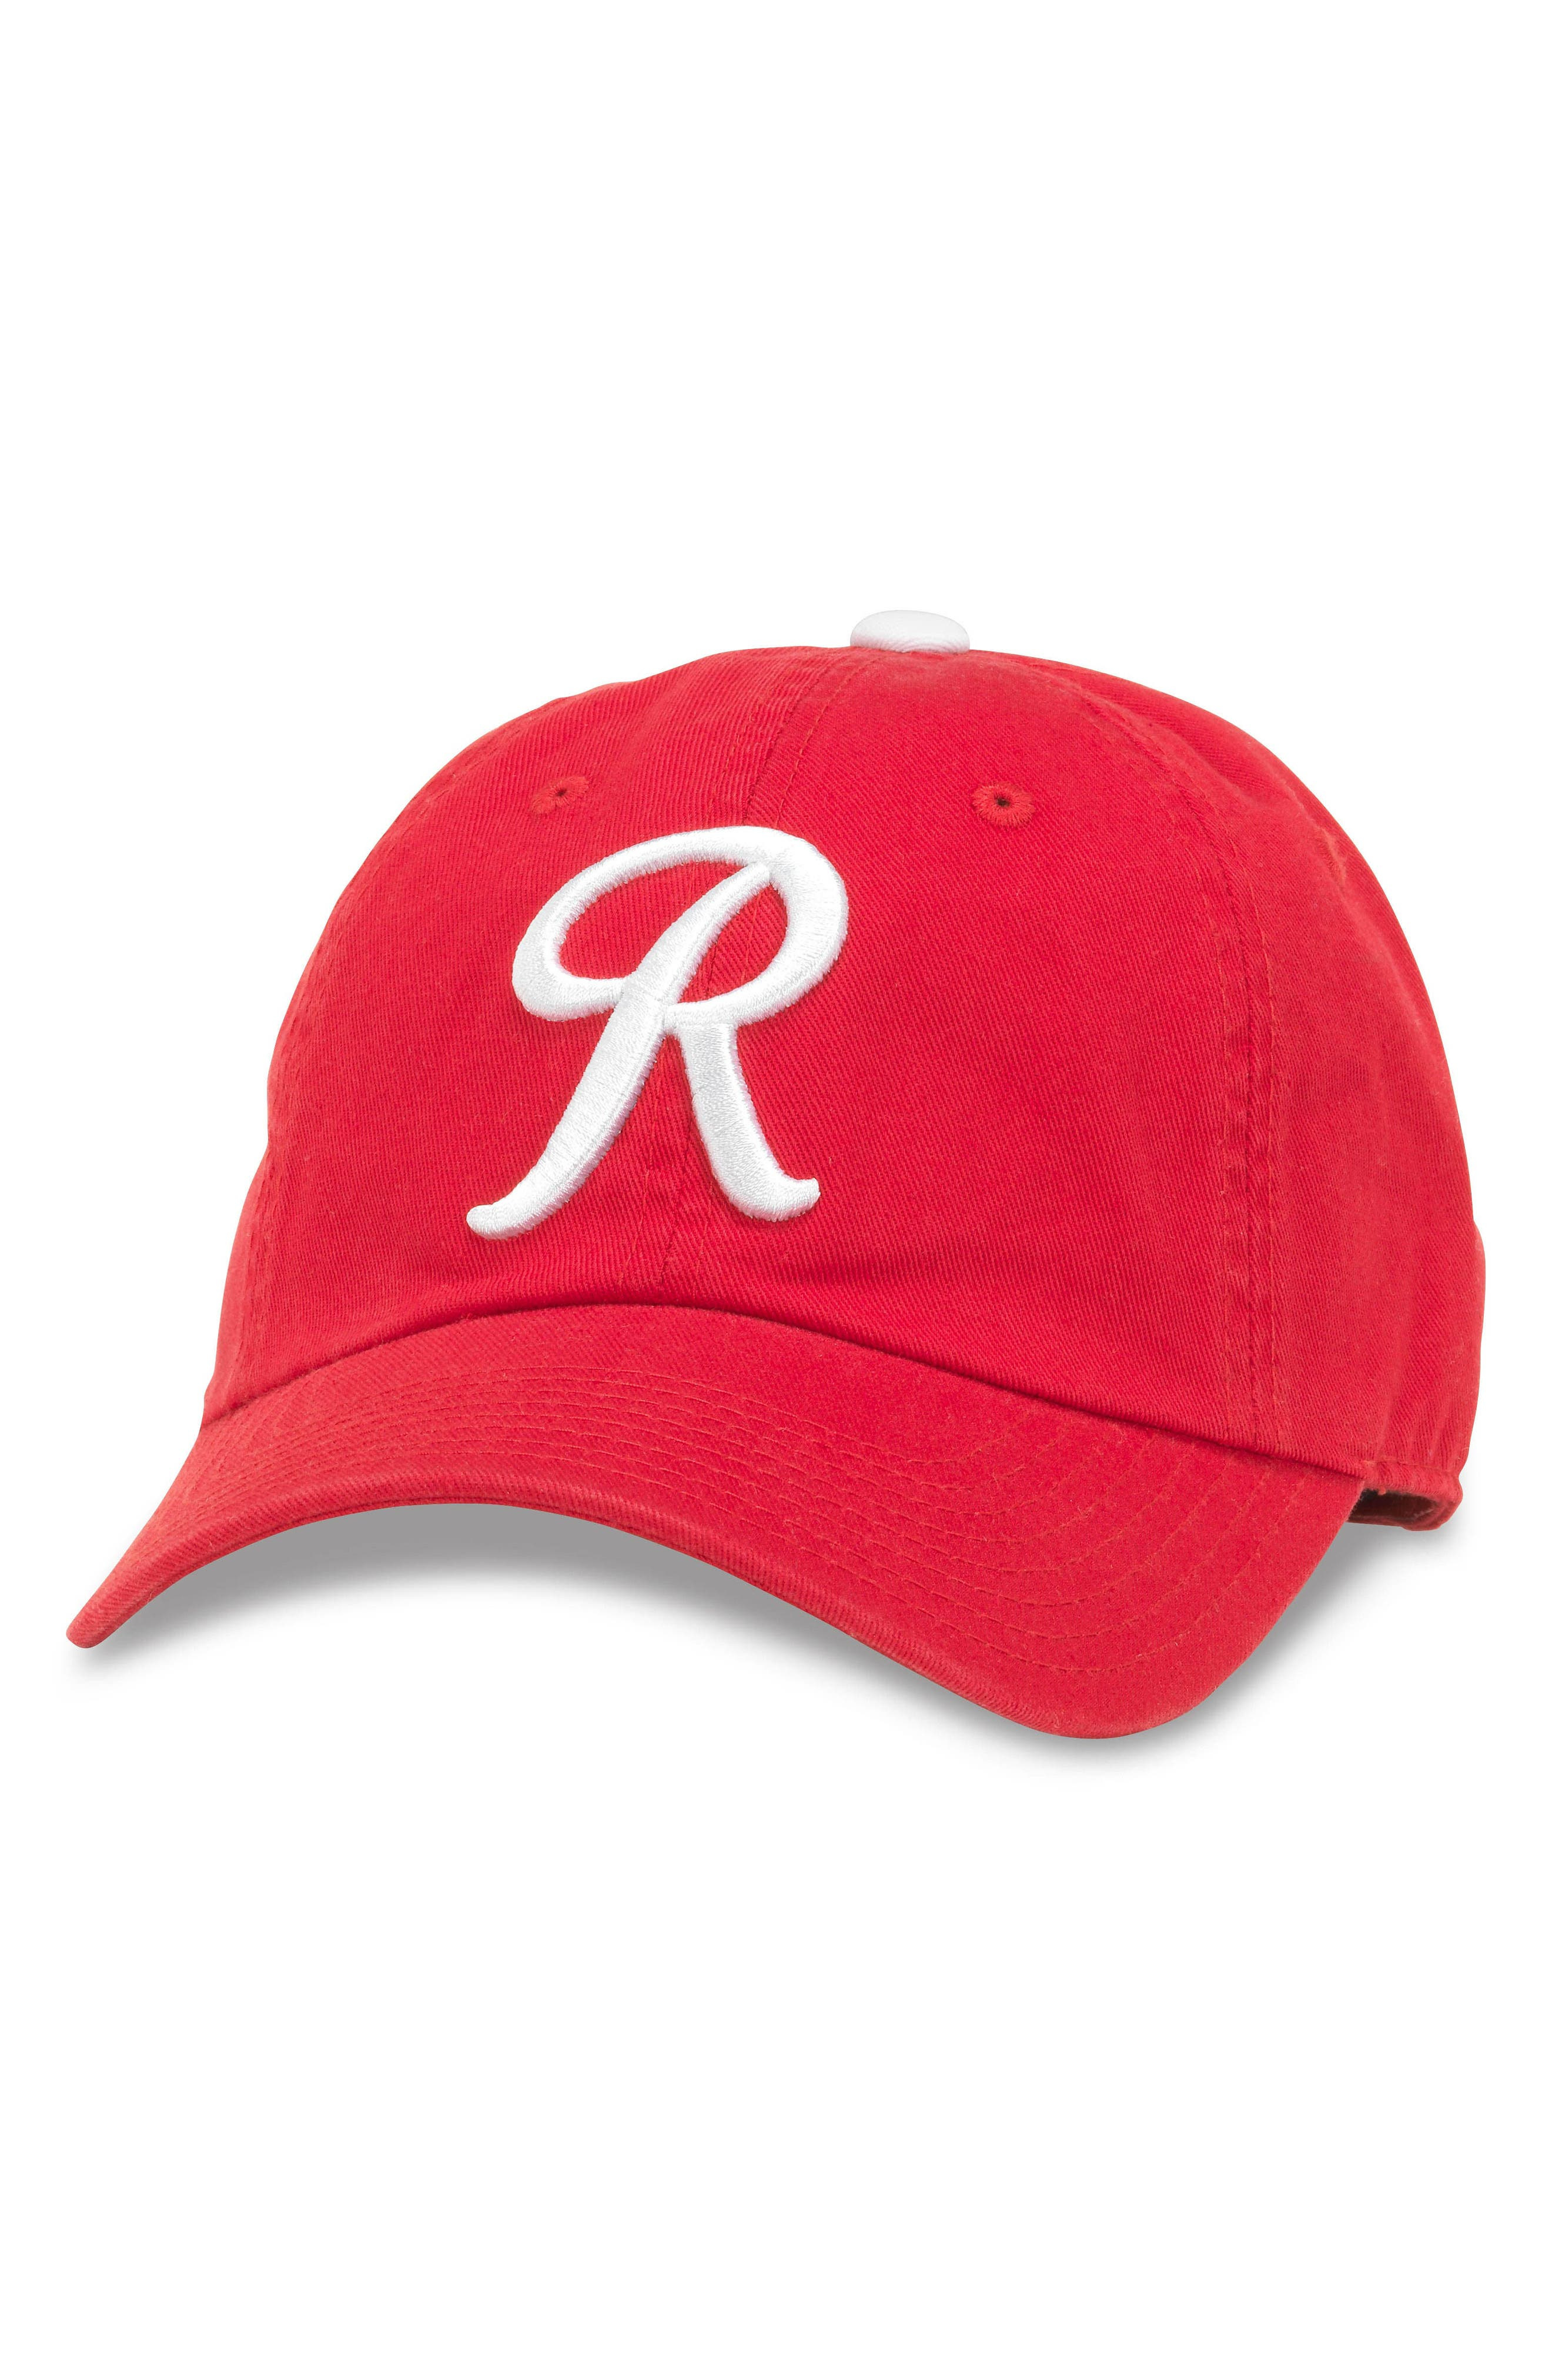 Alternate Image 1 Selected - American Needle Ballpark MLB Baseball Cap